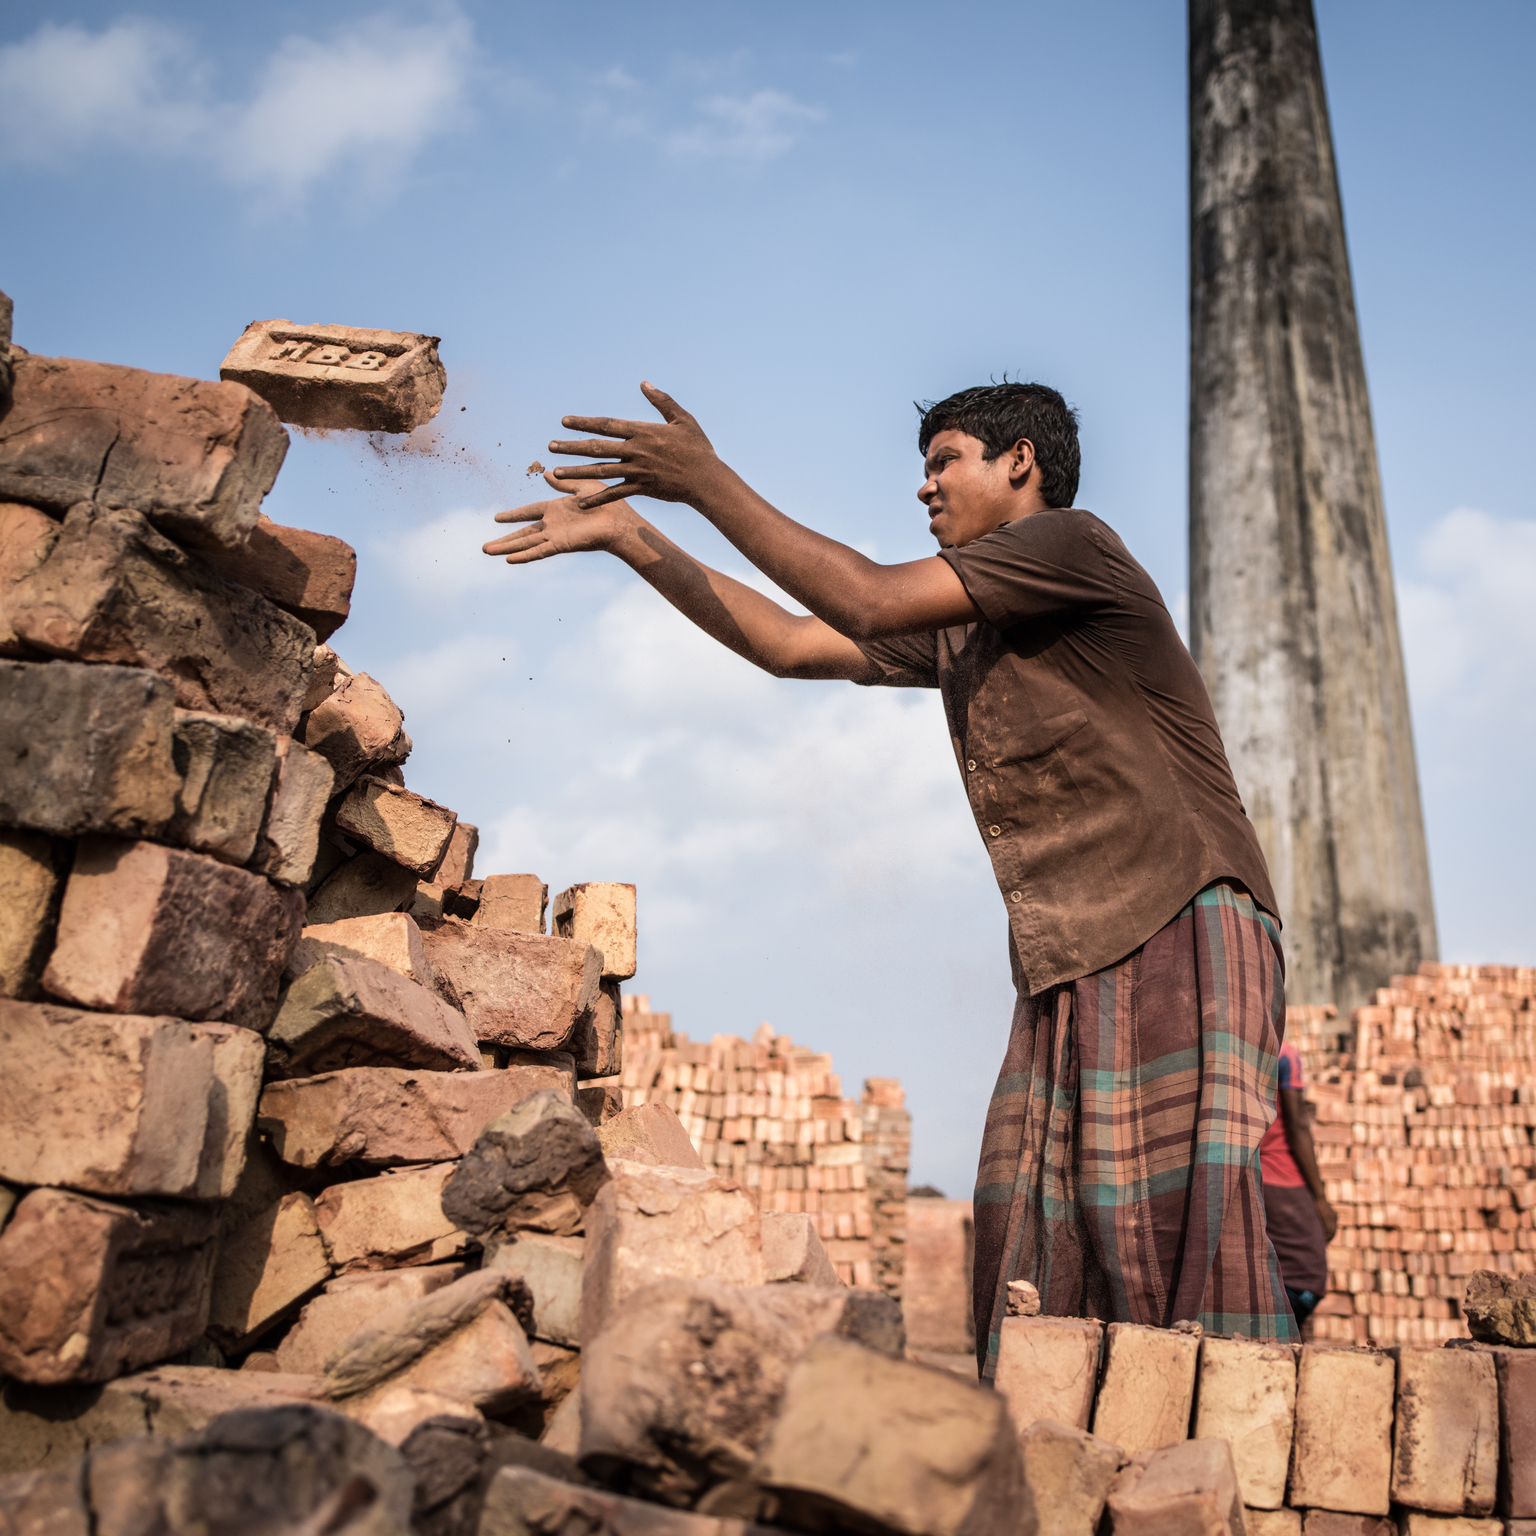 A Boy in a brick factory